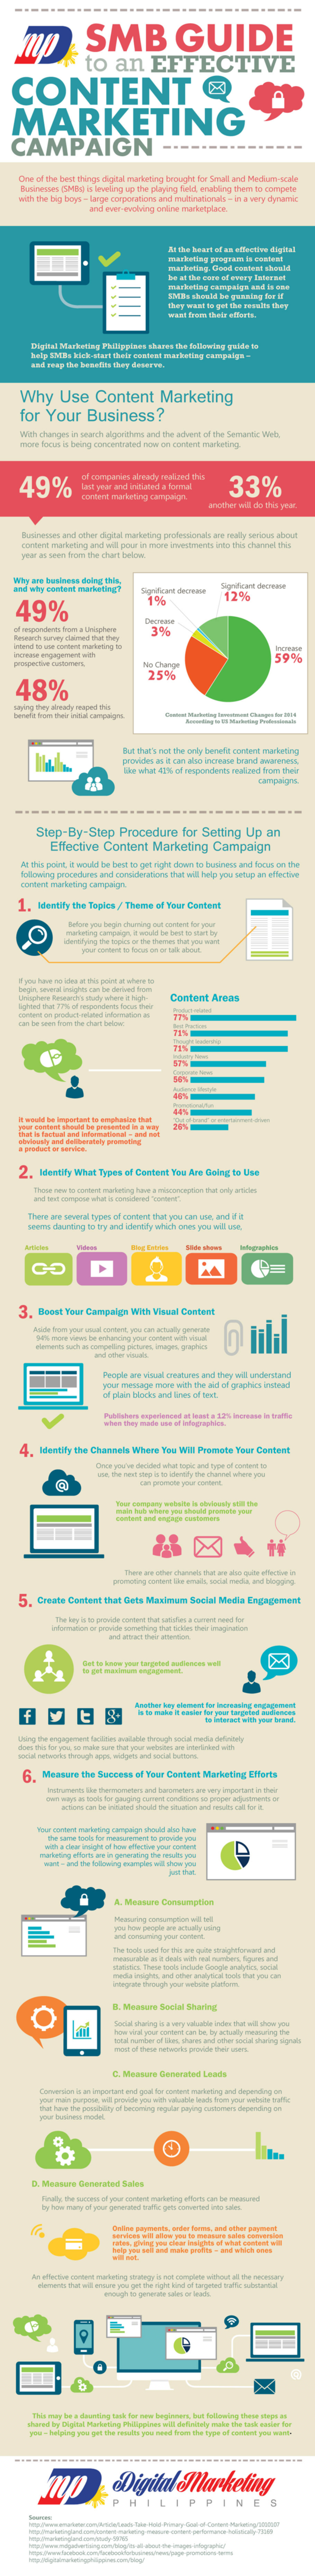 Effective Content Marketing Campaign for SMB